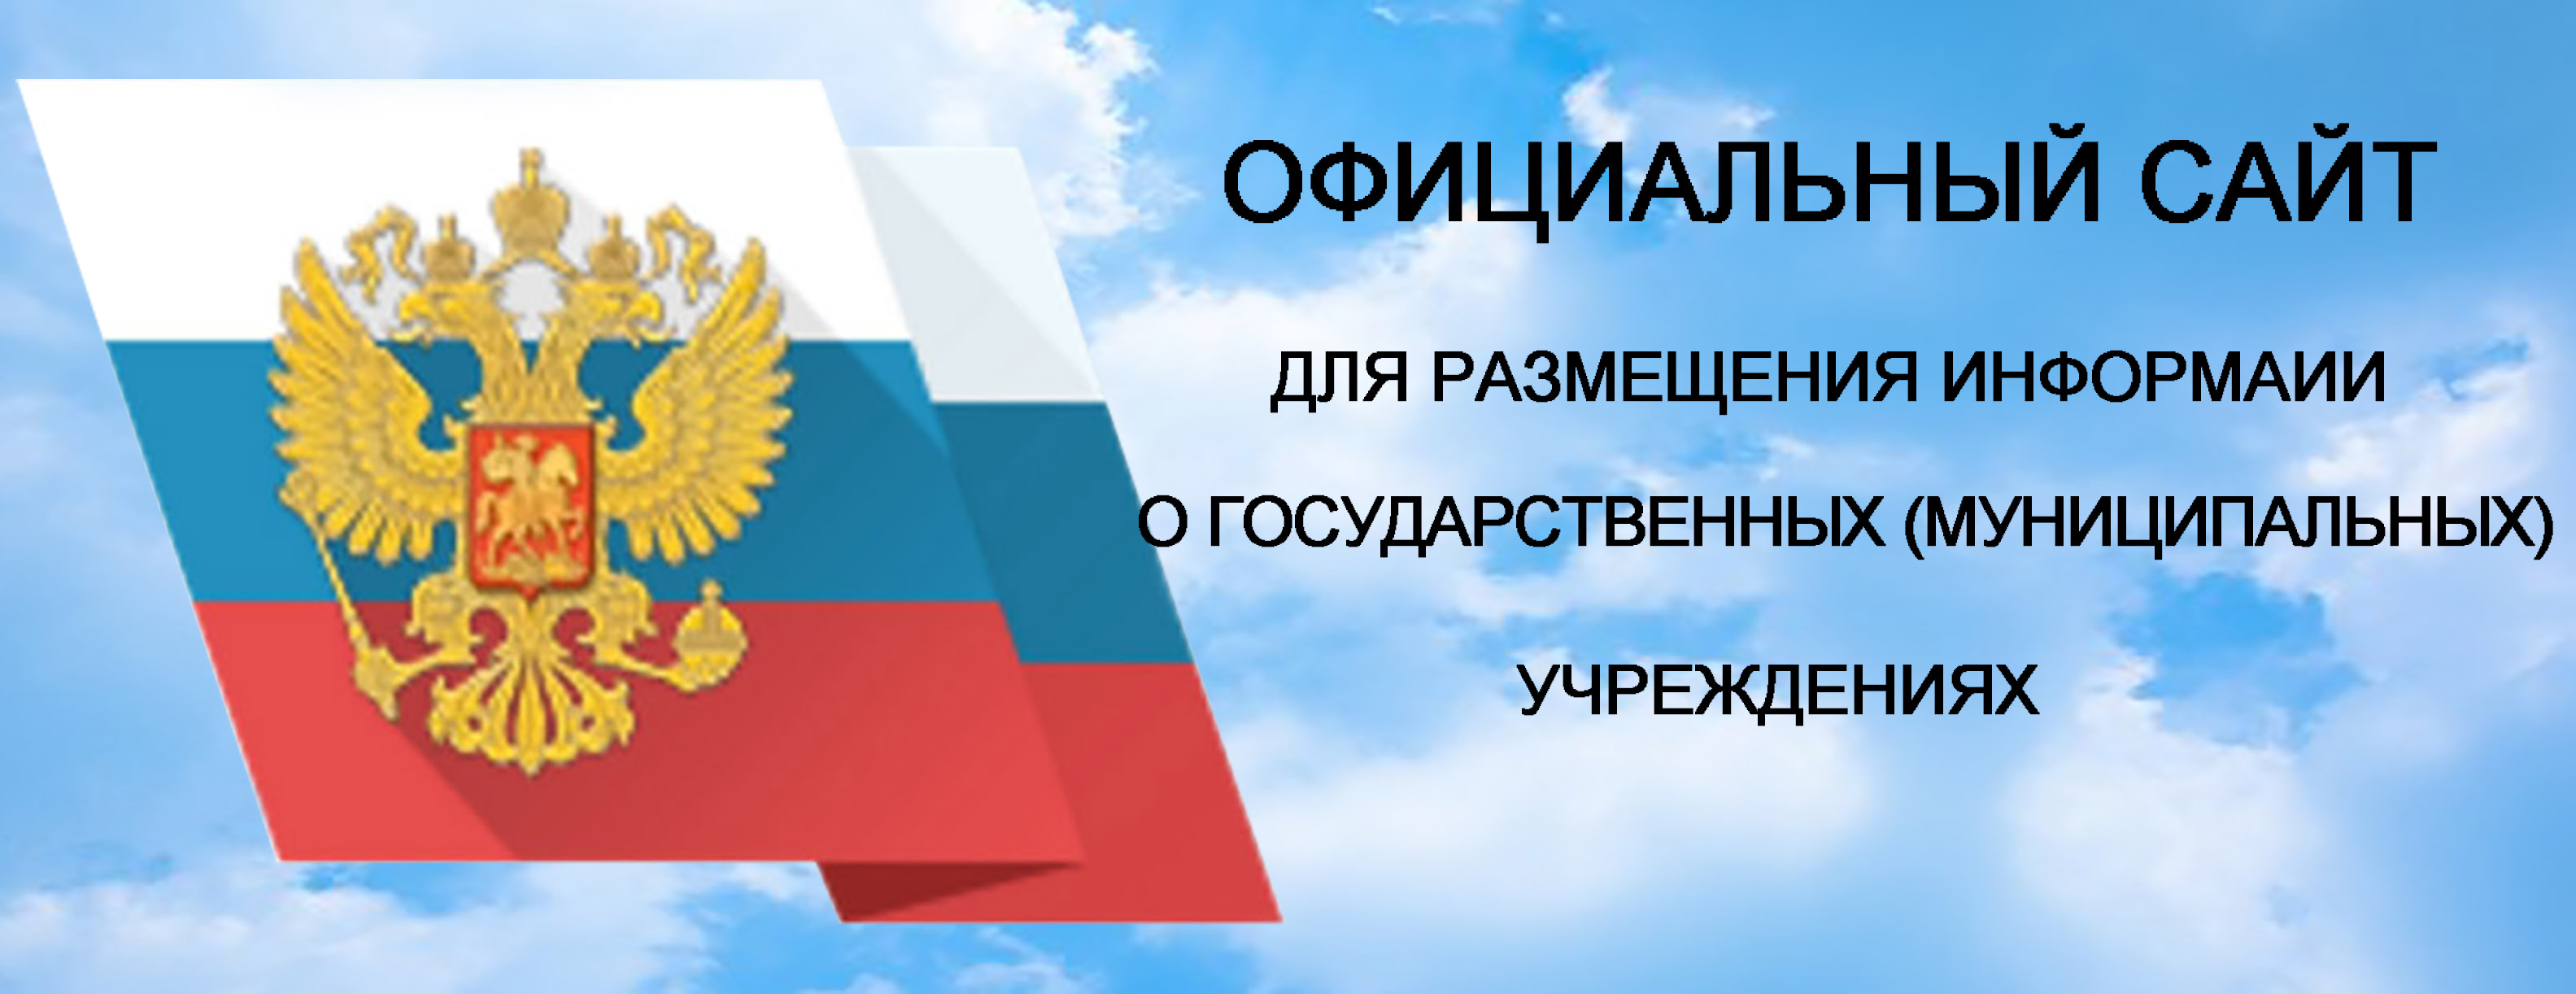 blue-sky-with-text